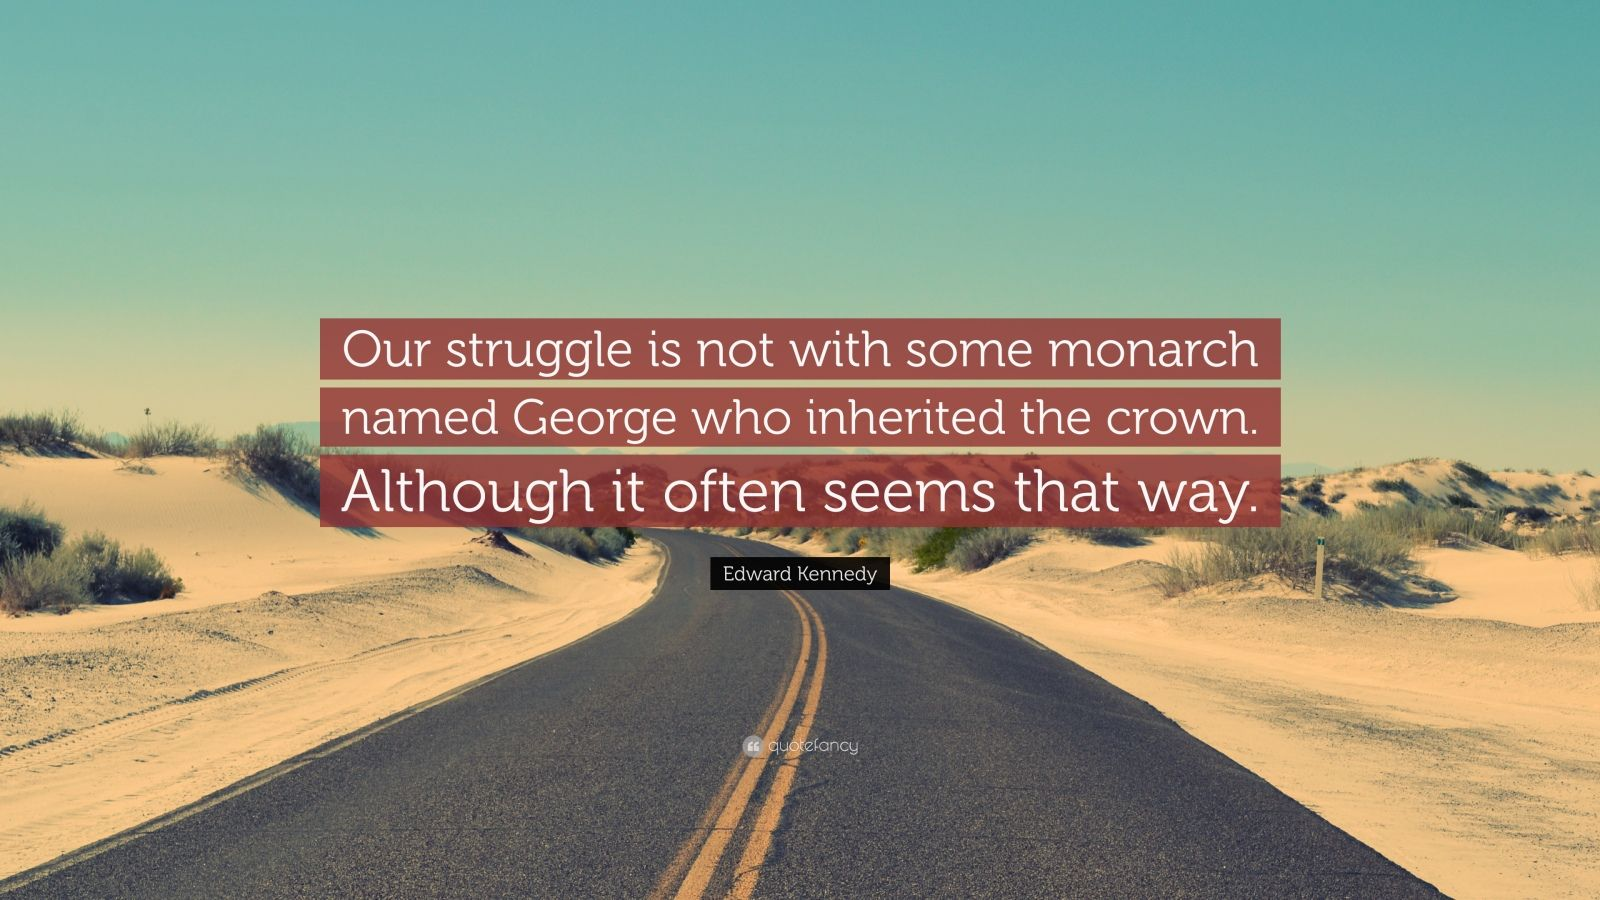 """Edward Kennedy Quote: """"Our struggle is not with some monarch named George who inherited the crown. Although it often seems that way."""""""